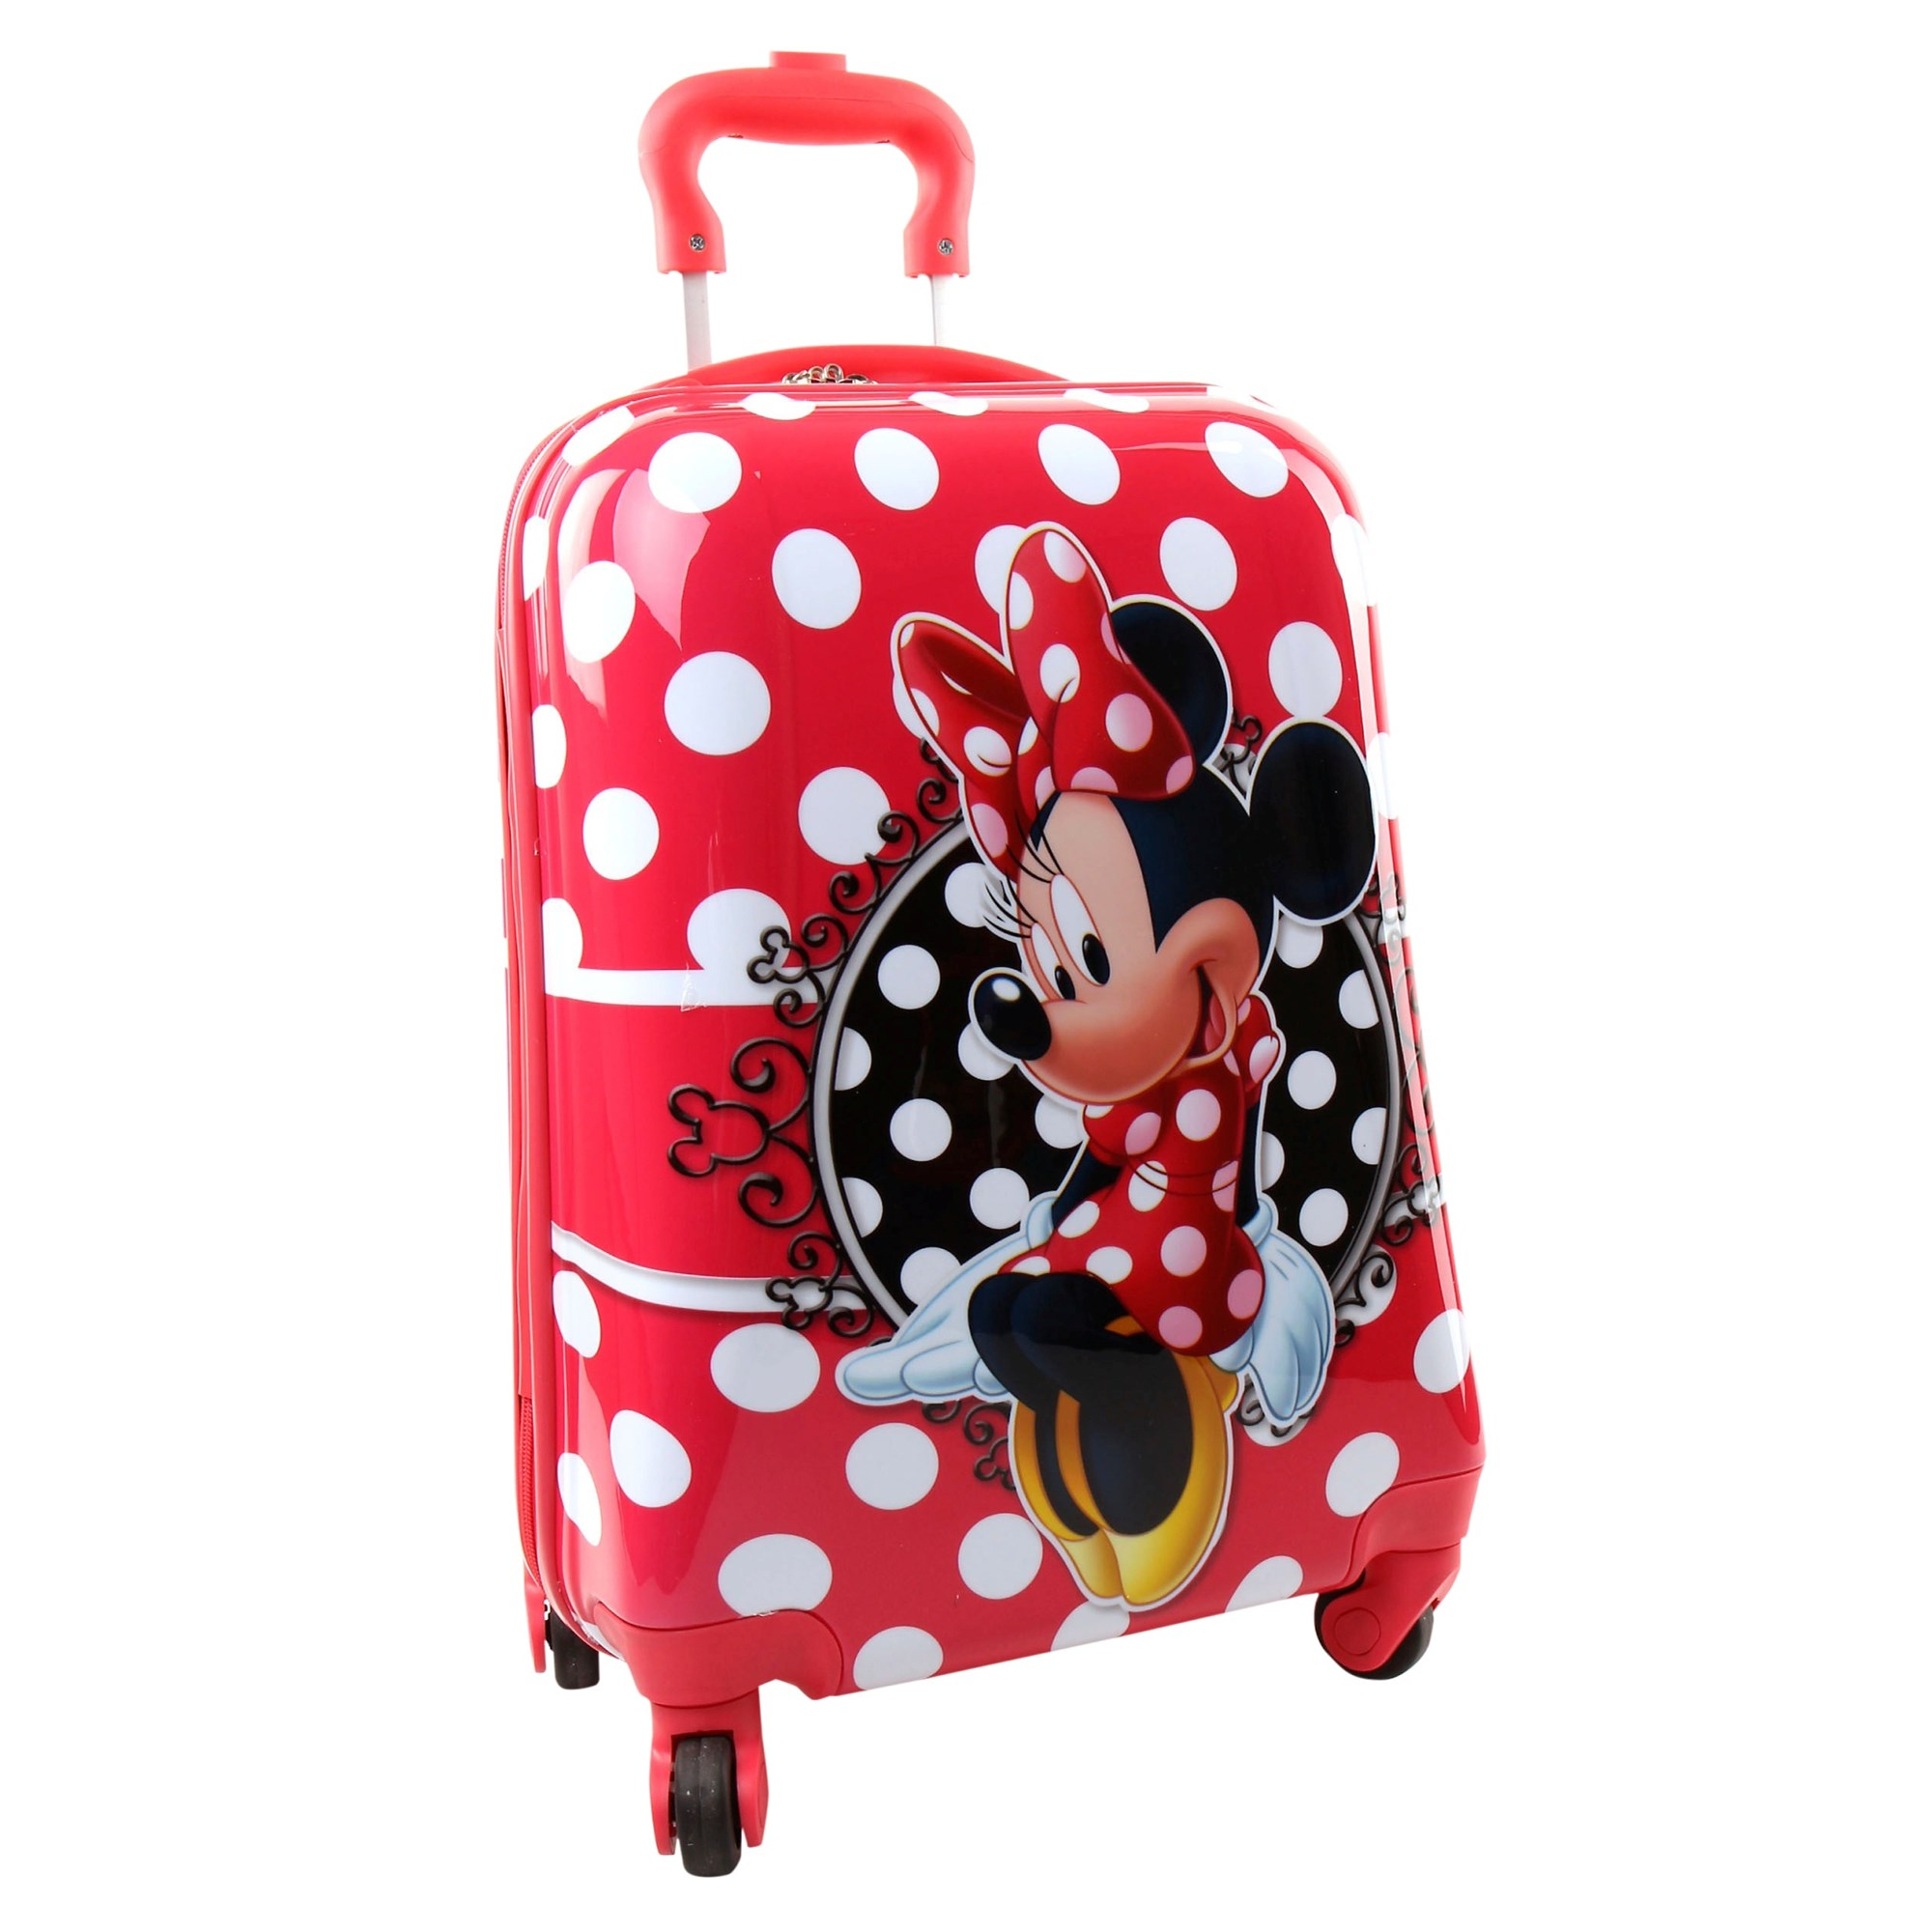 Disney Minnie Mouse Luggage Trolley Case